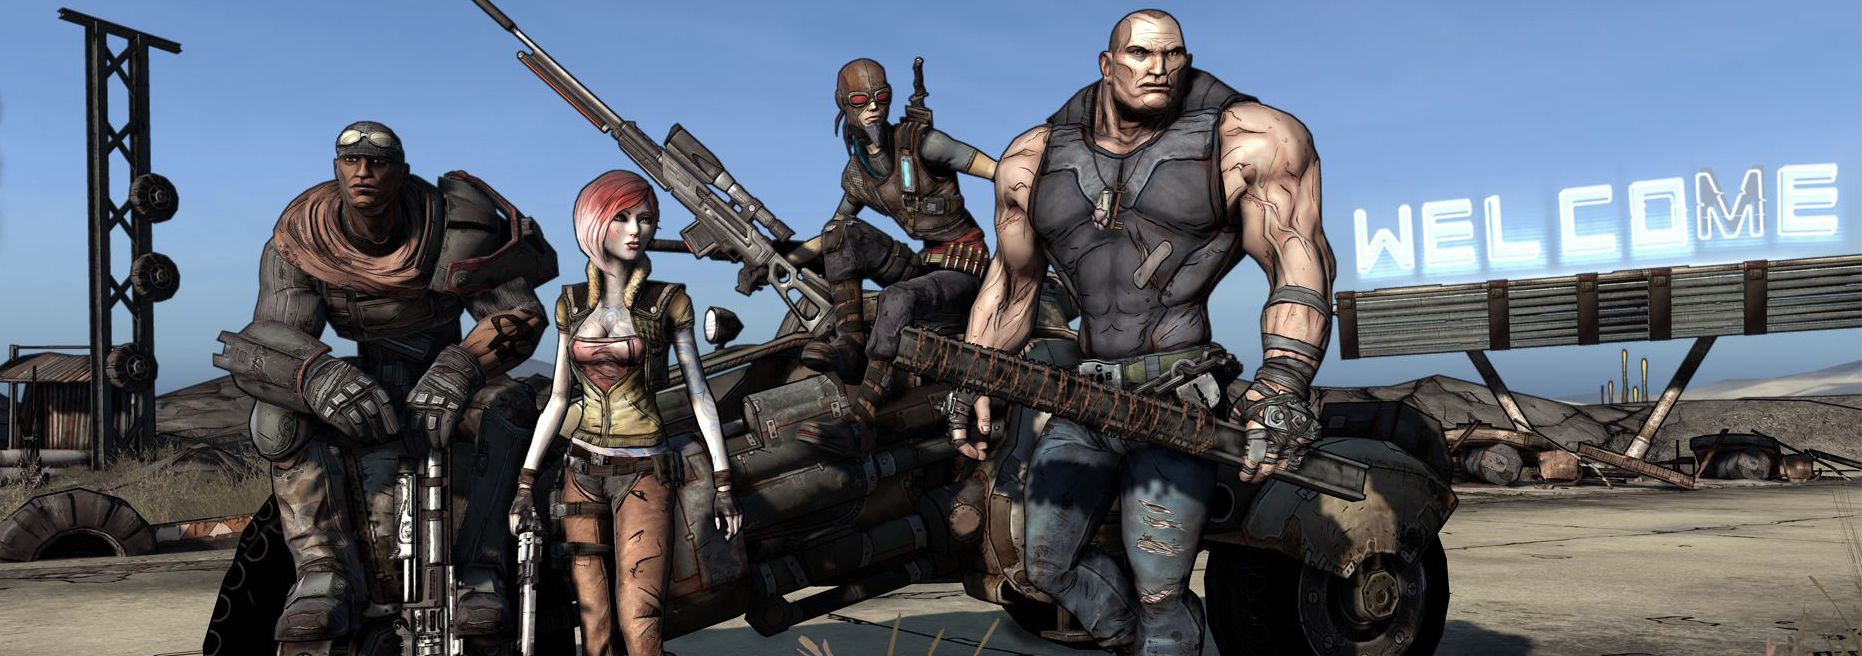 Personajes de Borderlands